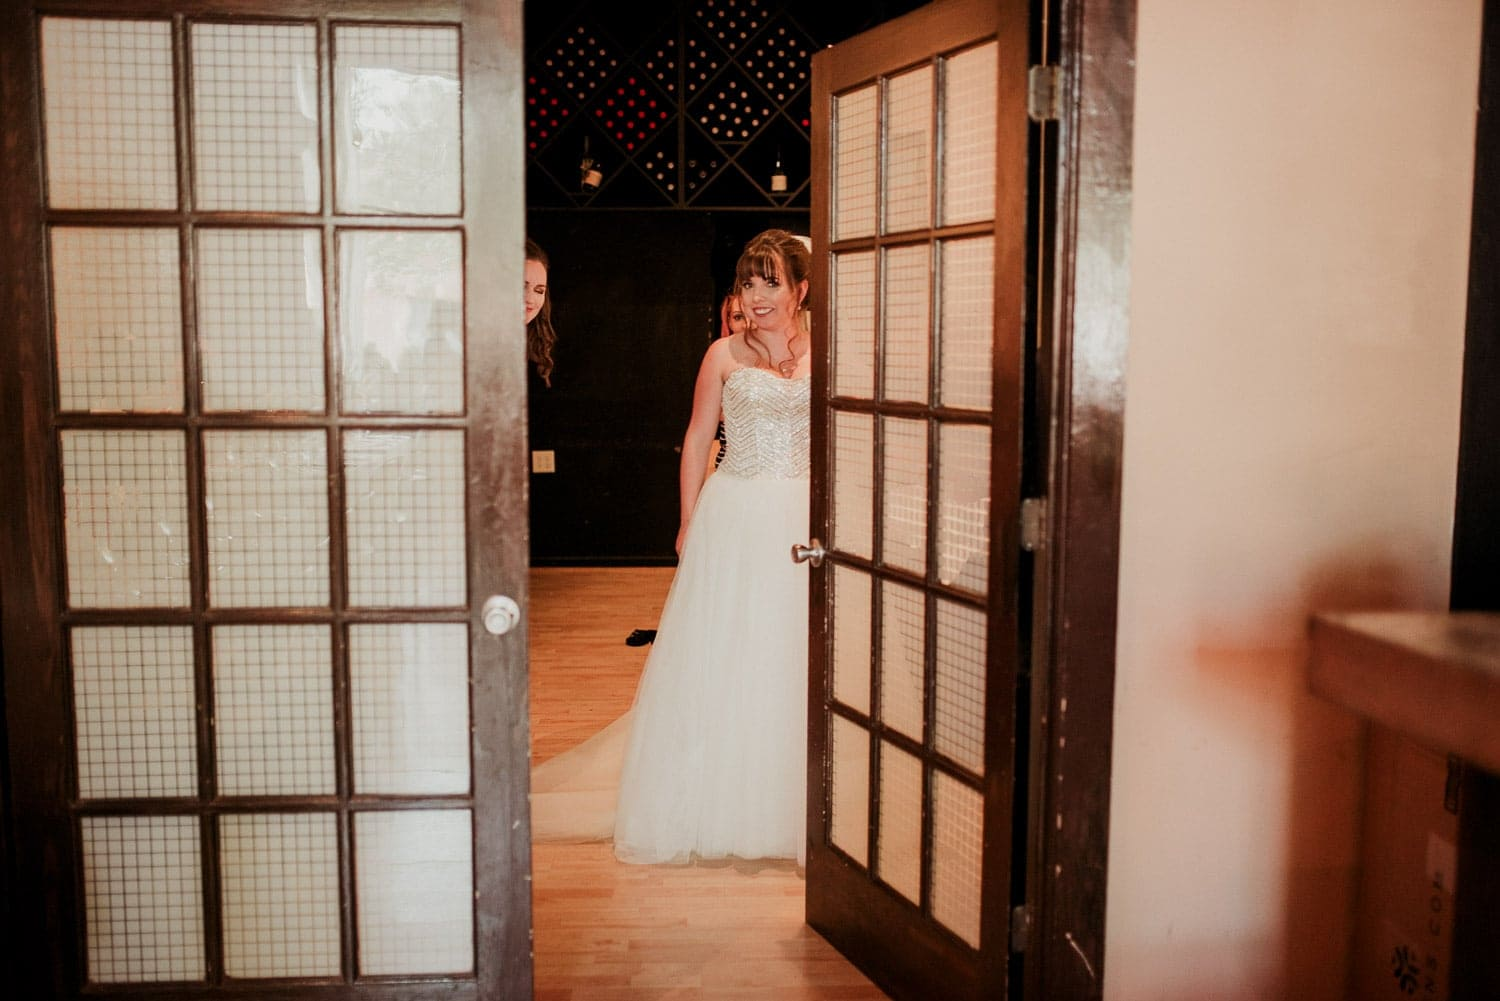 The bride is peeking out from behind an open door as she prepares to show everyone her wedding gown.